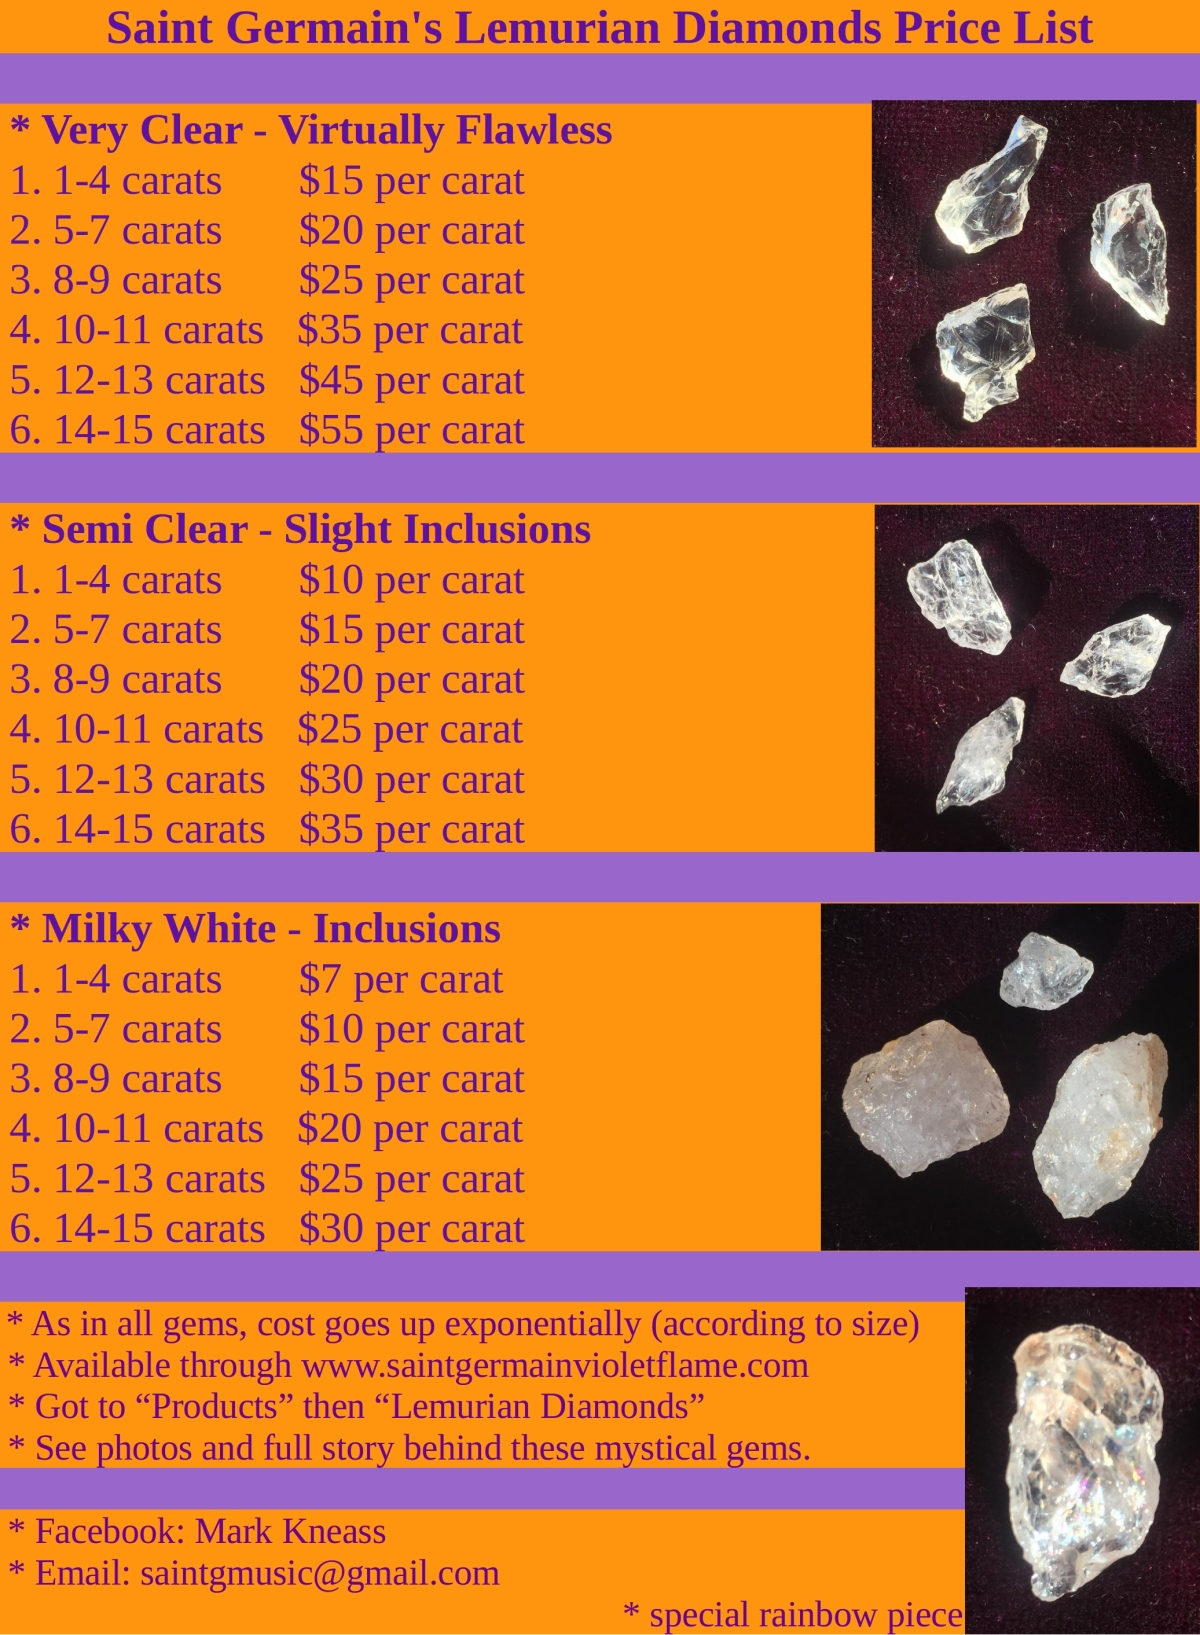 Lemurian diamonds price list